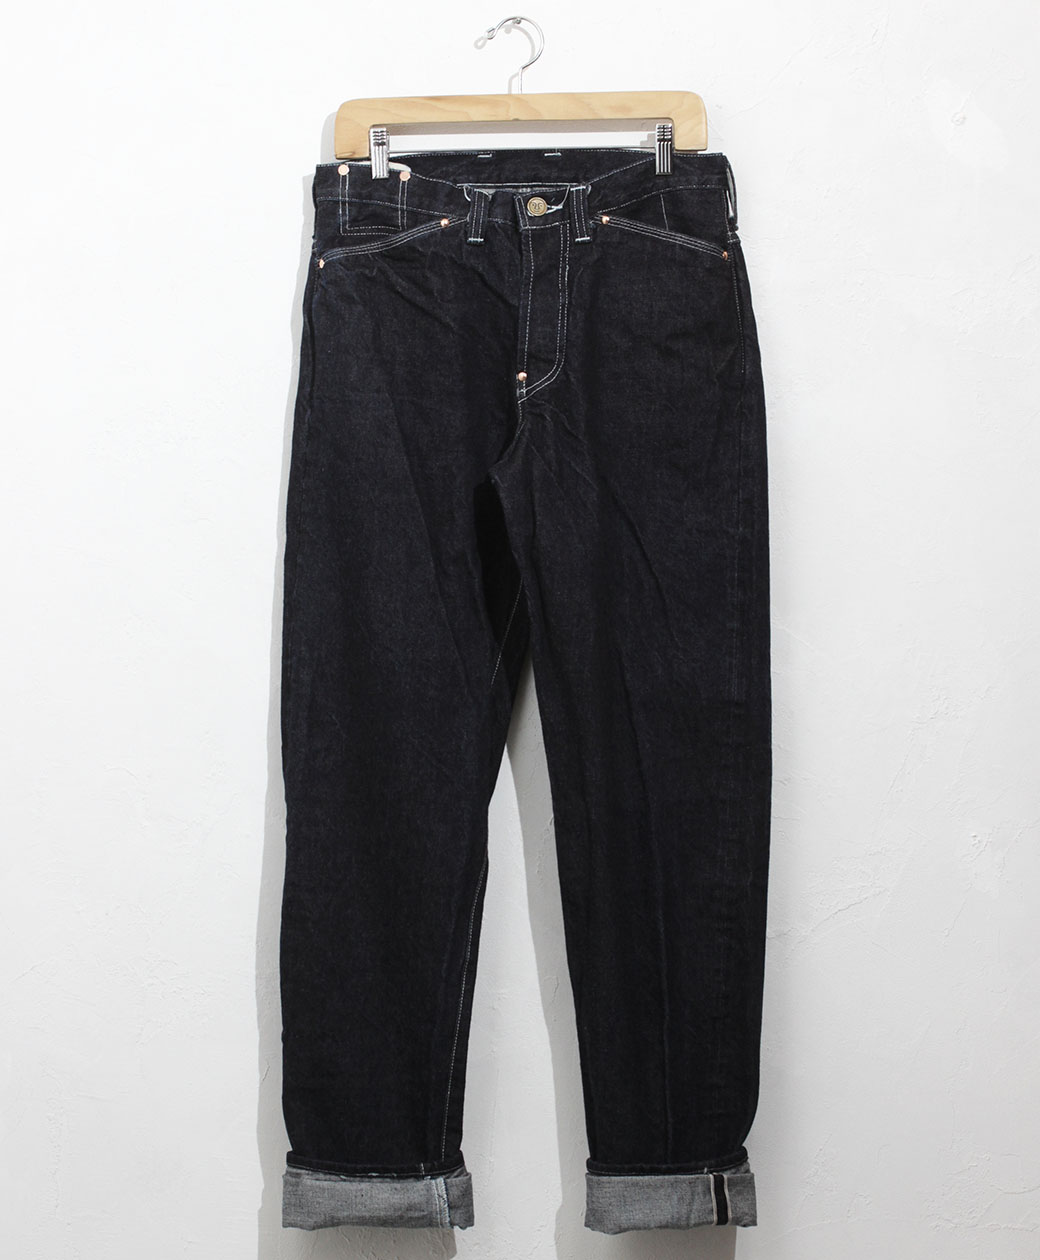 TENDER Co. TYPE 130 TAPERED JEANS 16oz SELVAGE DENIM